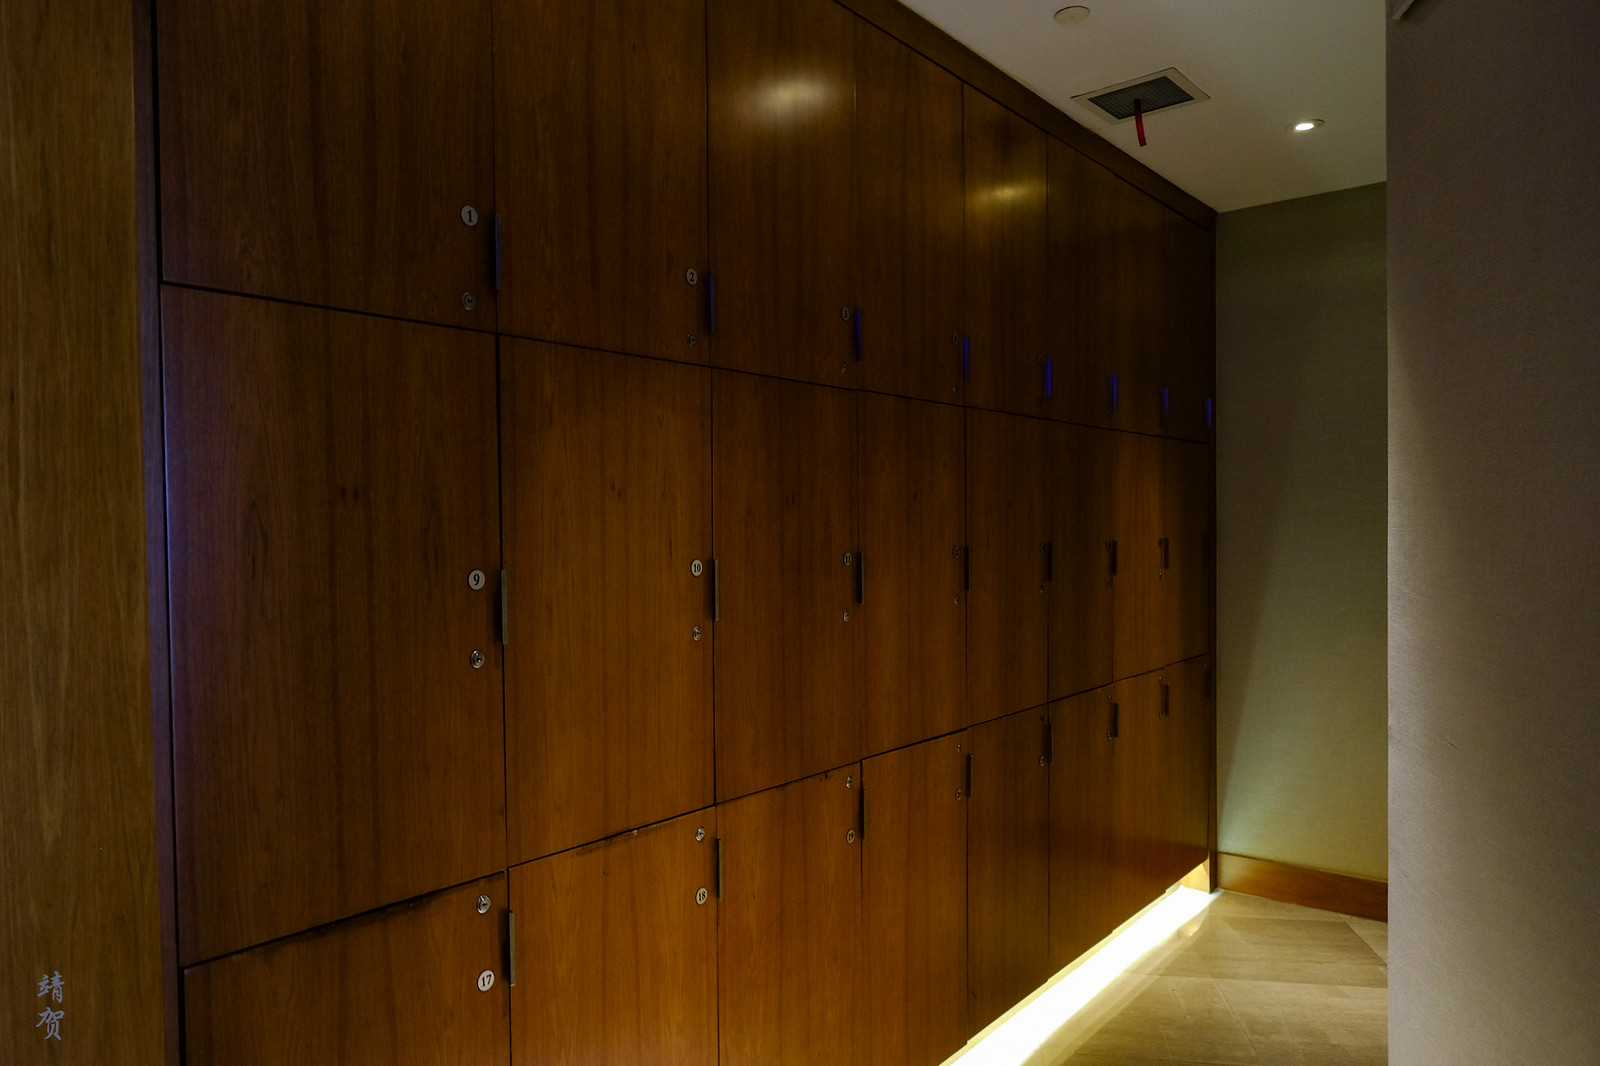 Lockers in the lounge